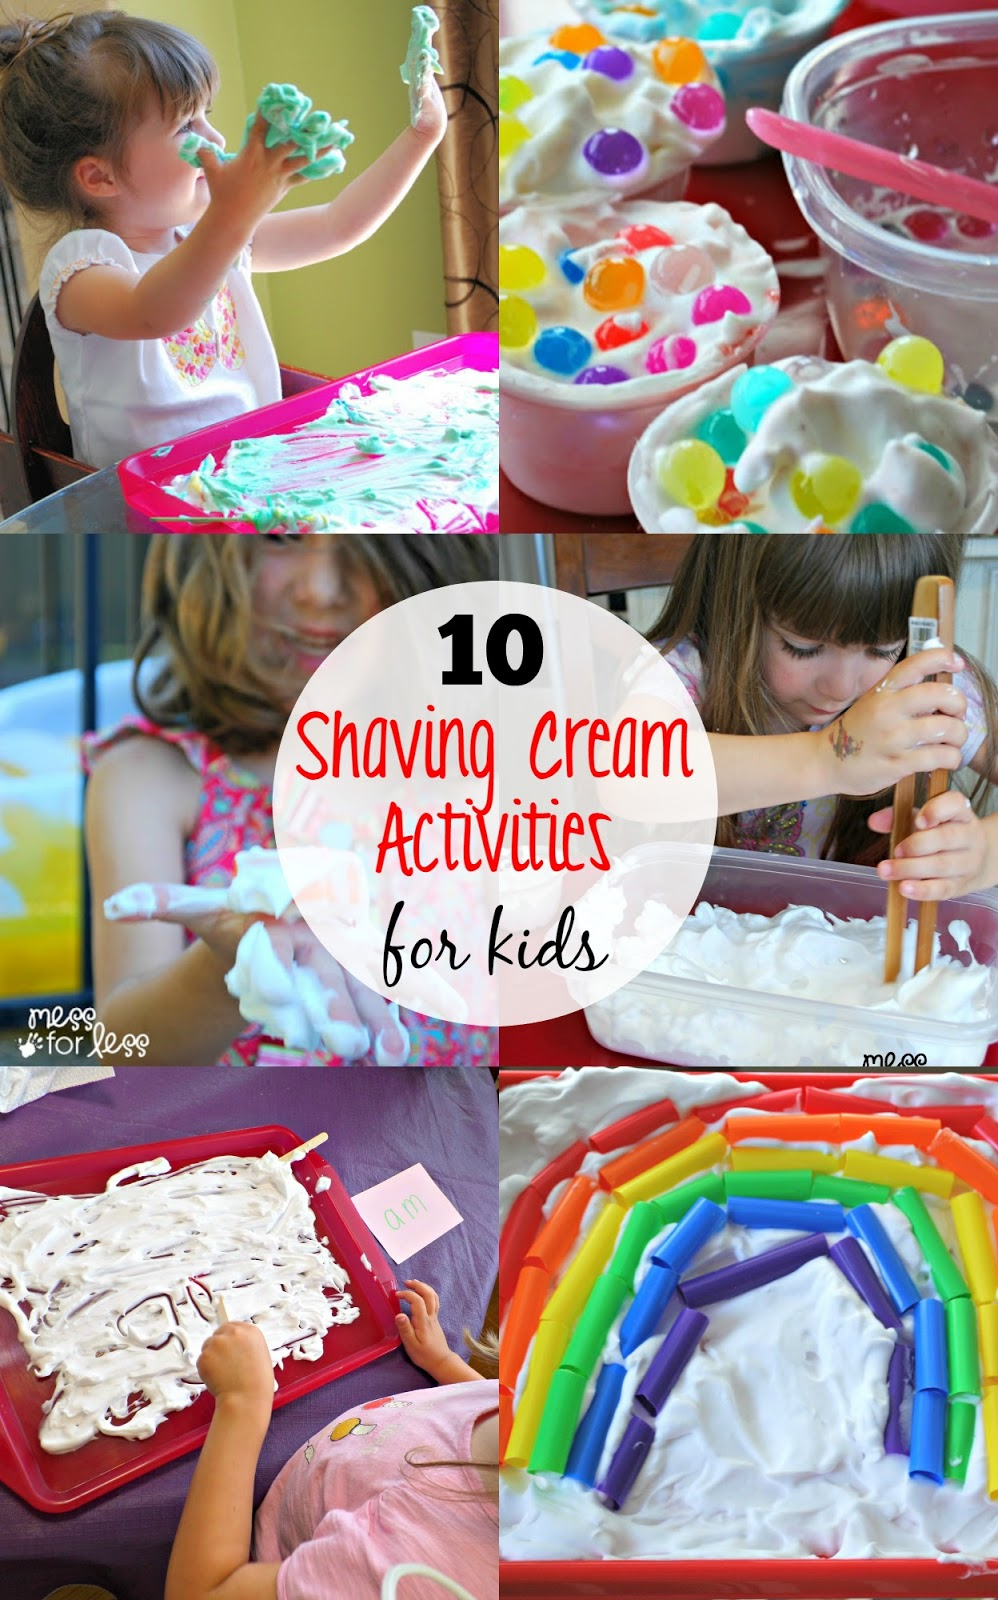 10 Shaving Cream Activities for Kids - Look how many ways you can use shaving cream for fun and learning!